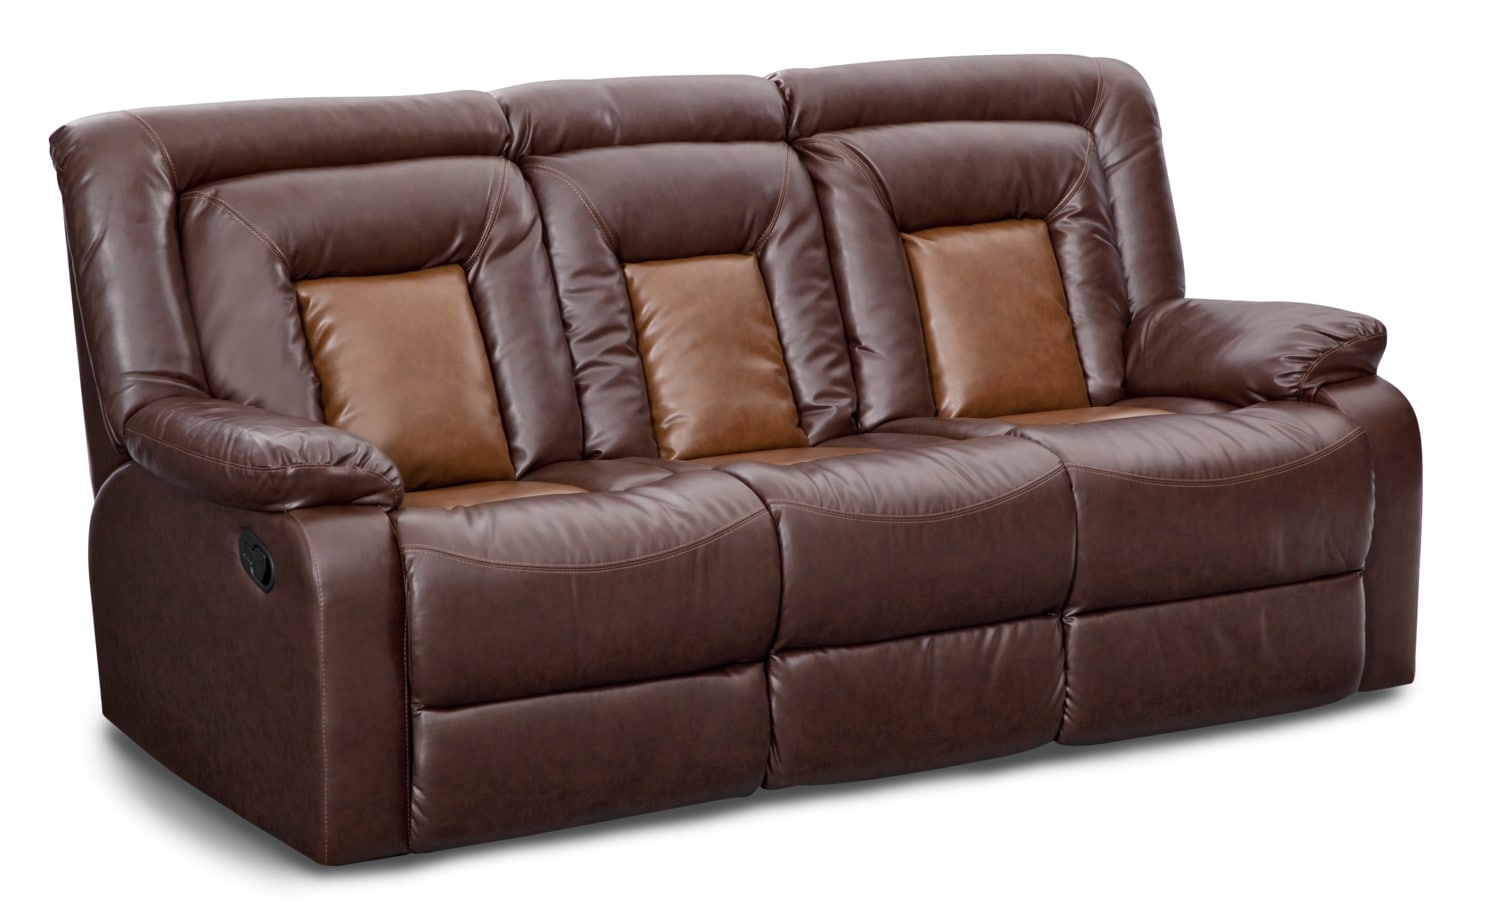 american living room furniture. mustang dualreclining sofa with console brown american living room furniture